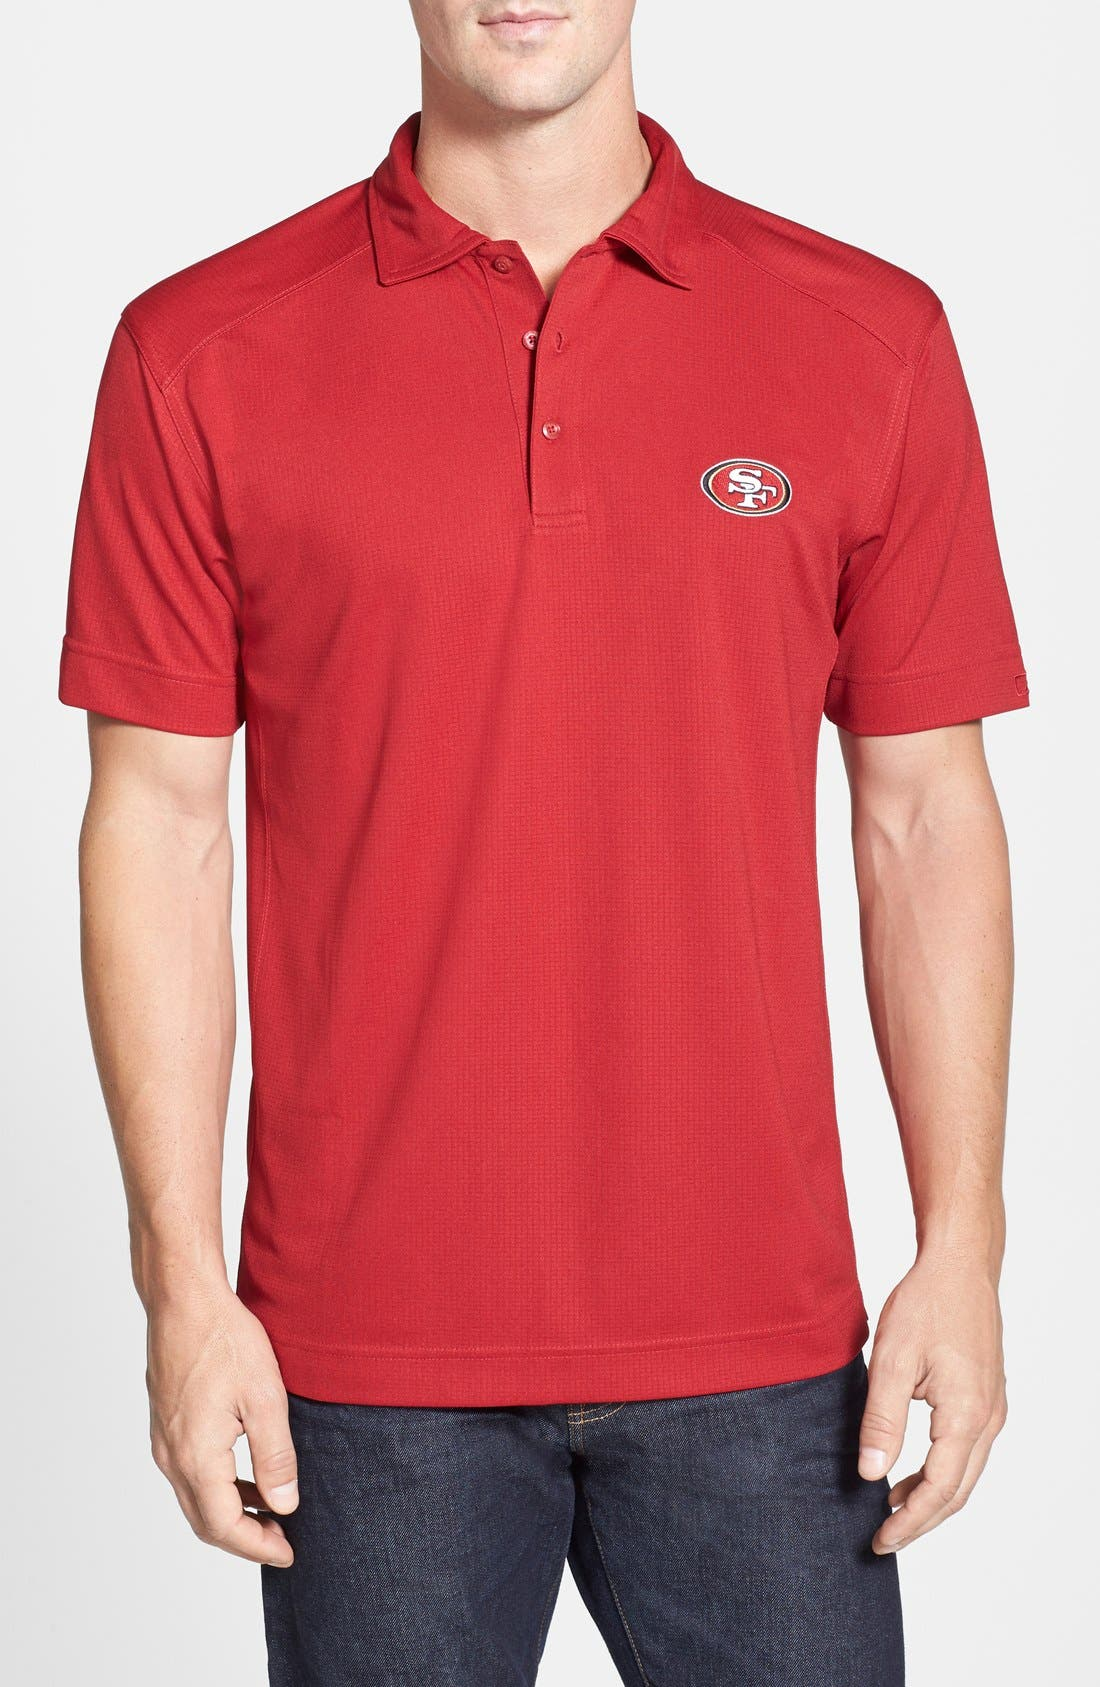 San Francisco 49ers - Genre DryTec Moisture Wicking Polo,                             Main thumbnail 1, color,                             Cardinal Red